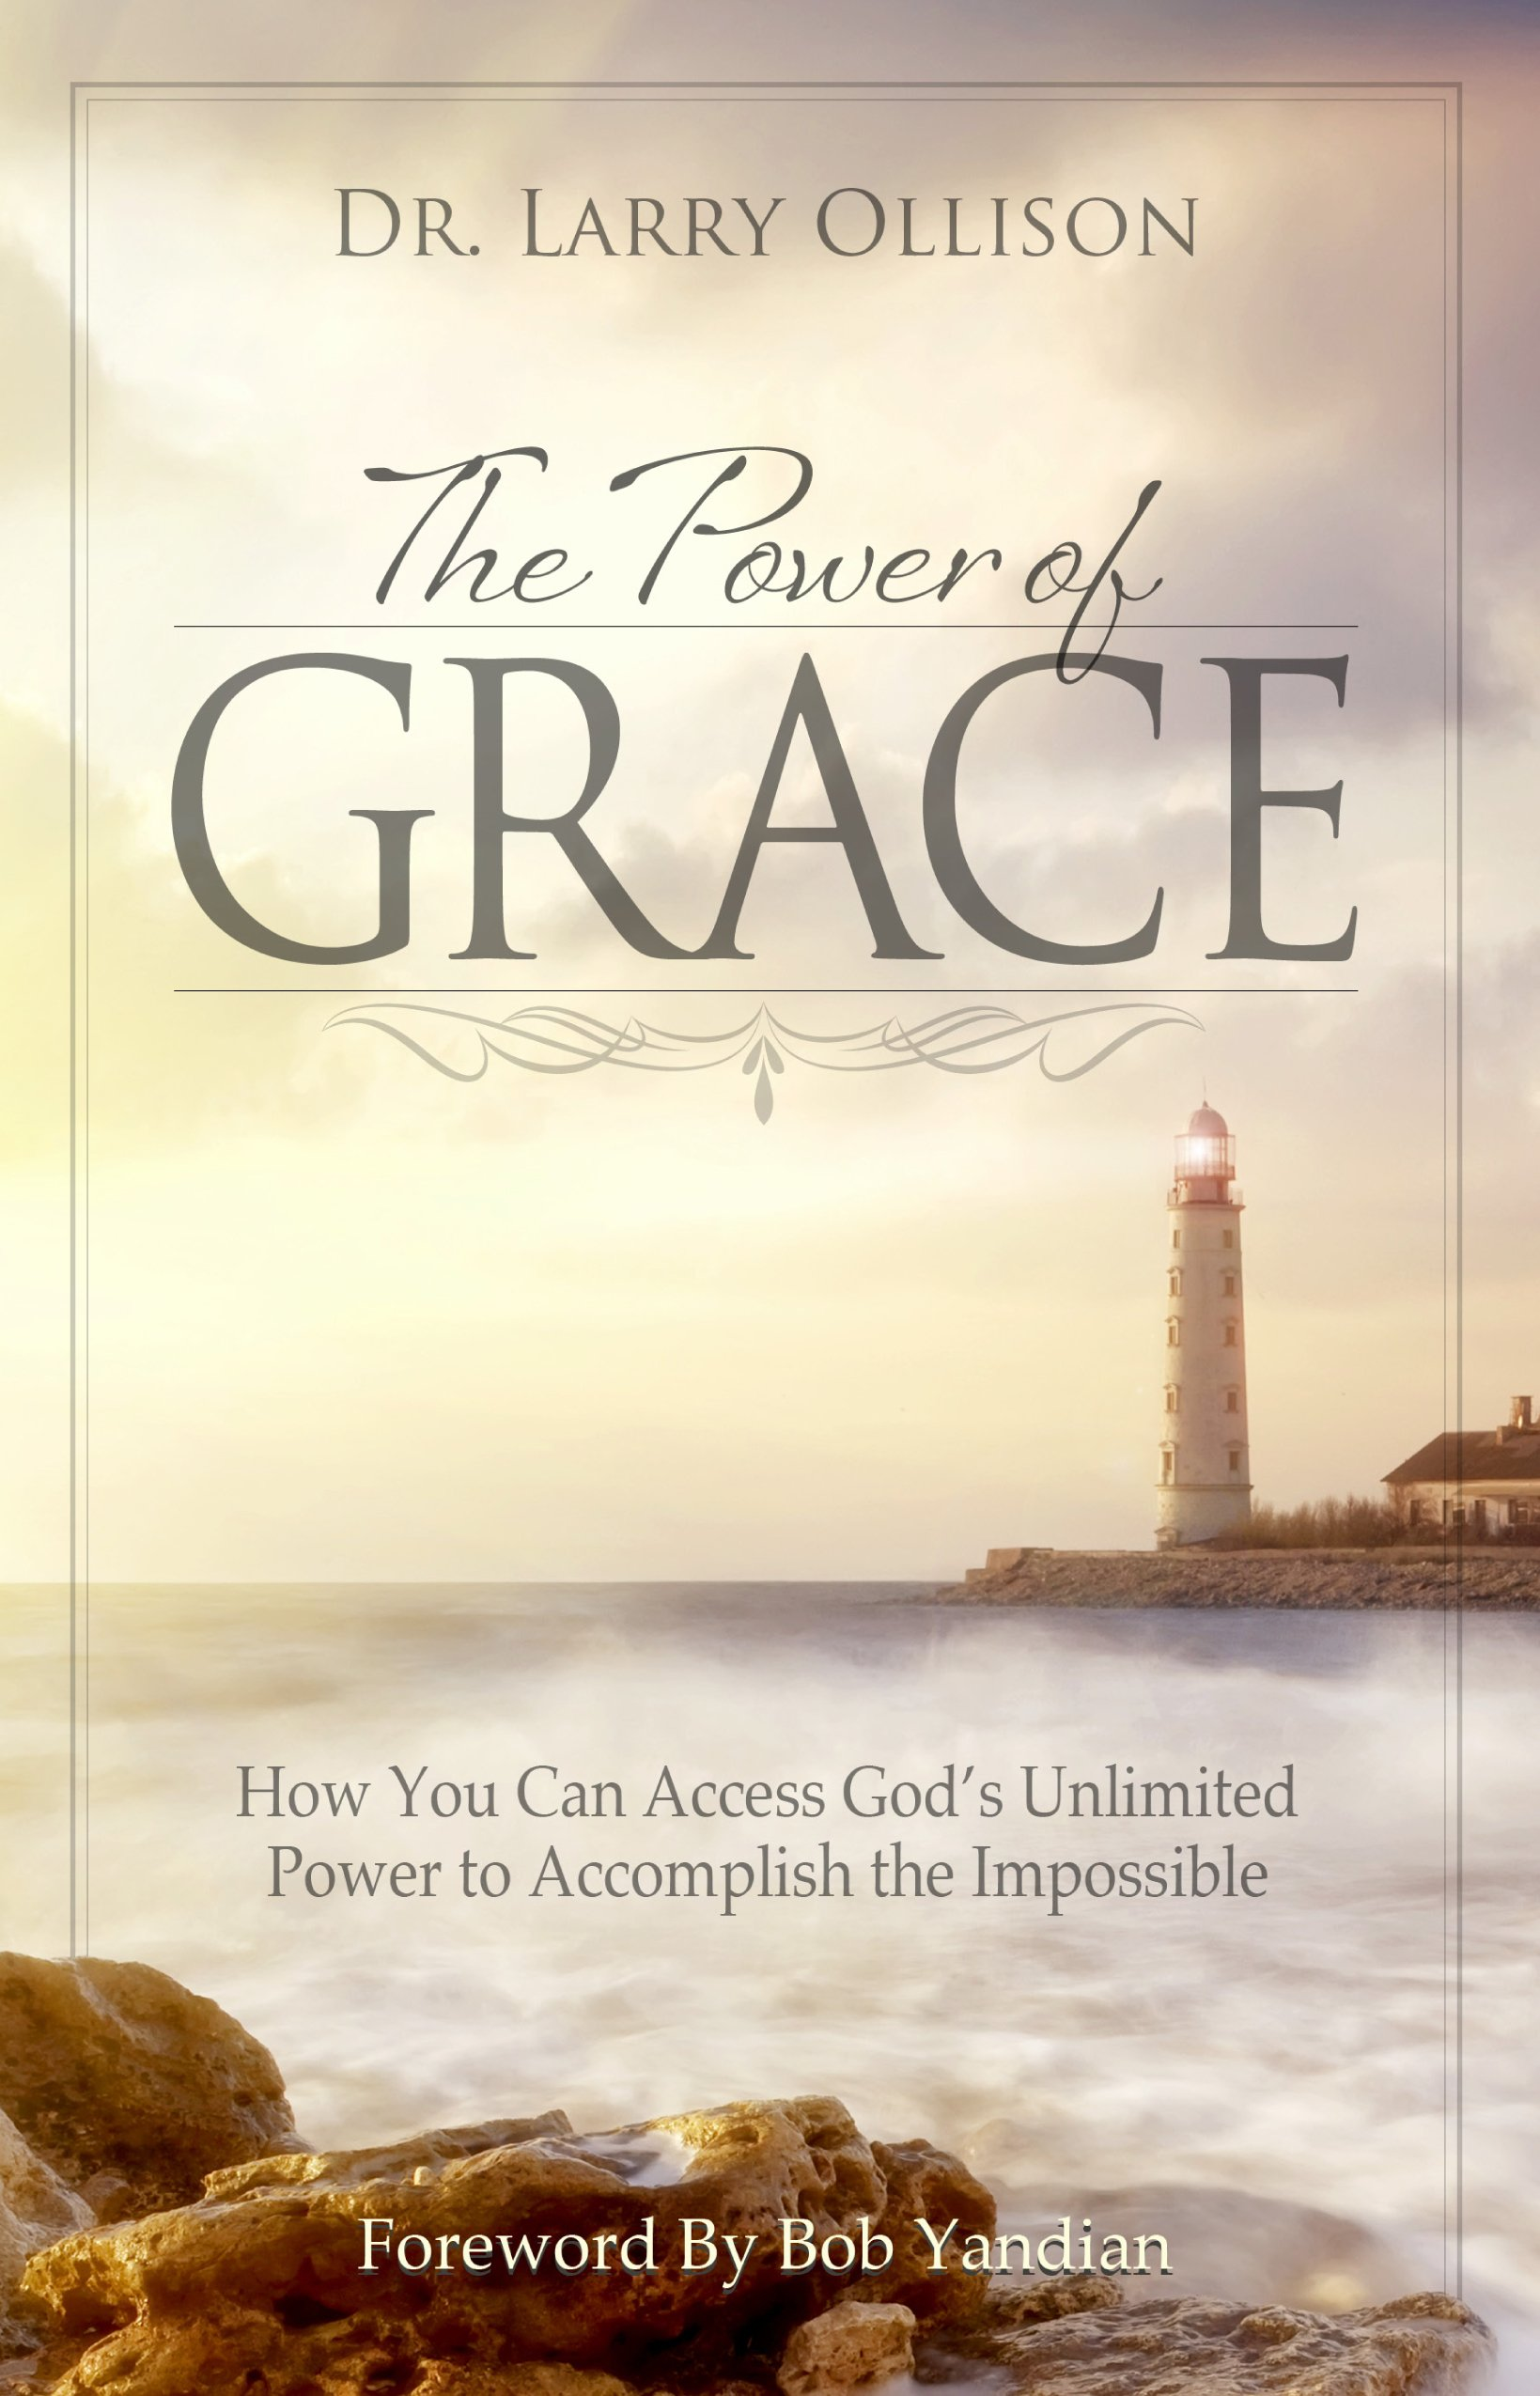 Power of Grace: How You Can Access Gods Unlimited Power to Accomplish the Impossible